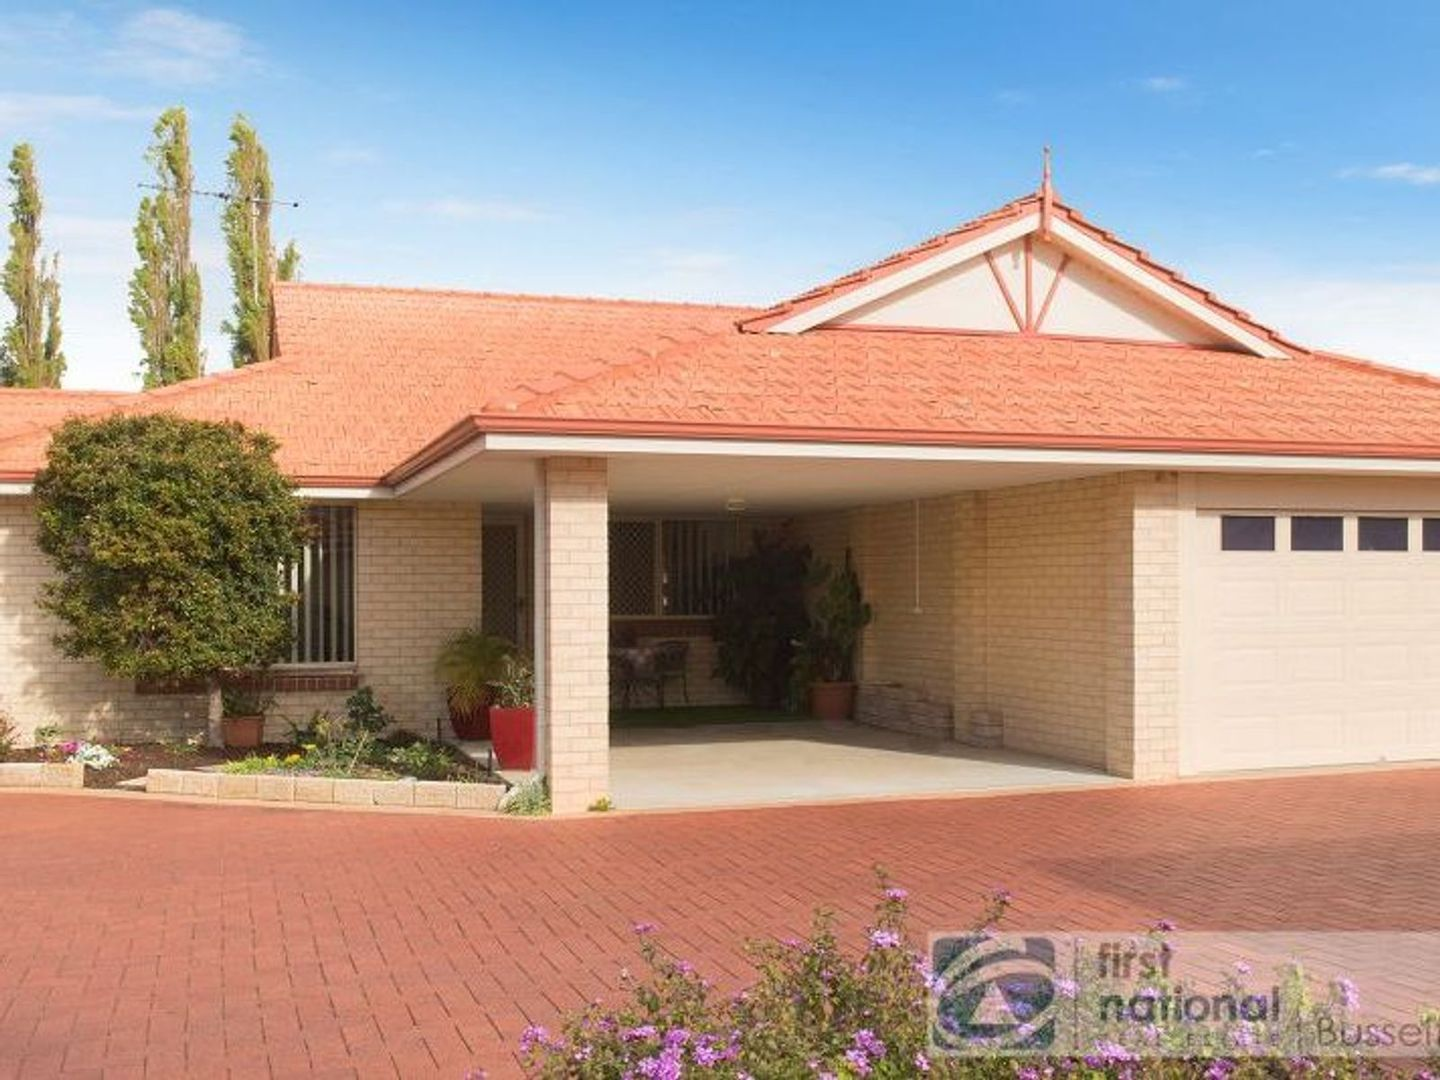 6/78 Ford Road, Busselton WA 6280, Image 0